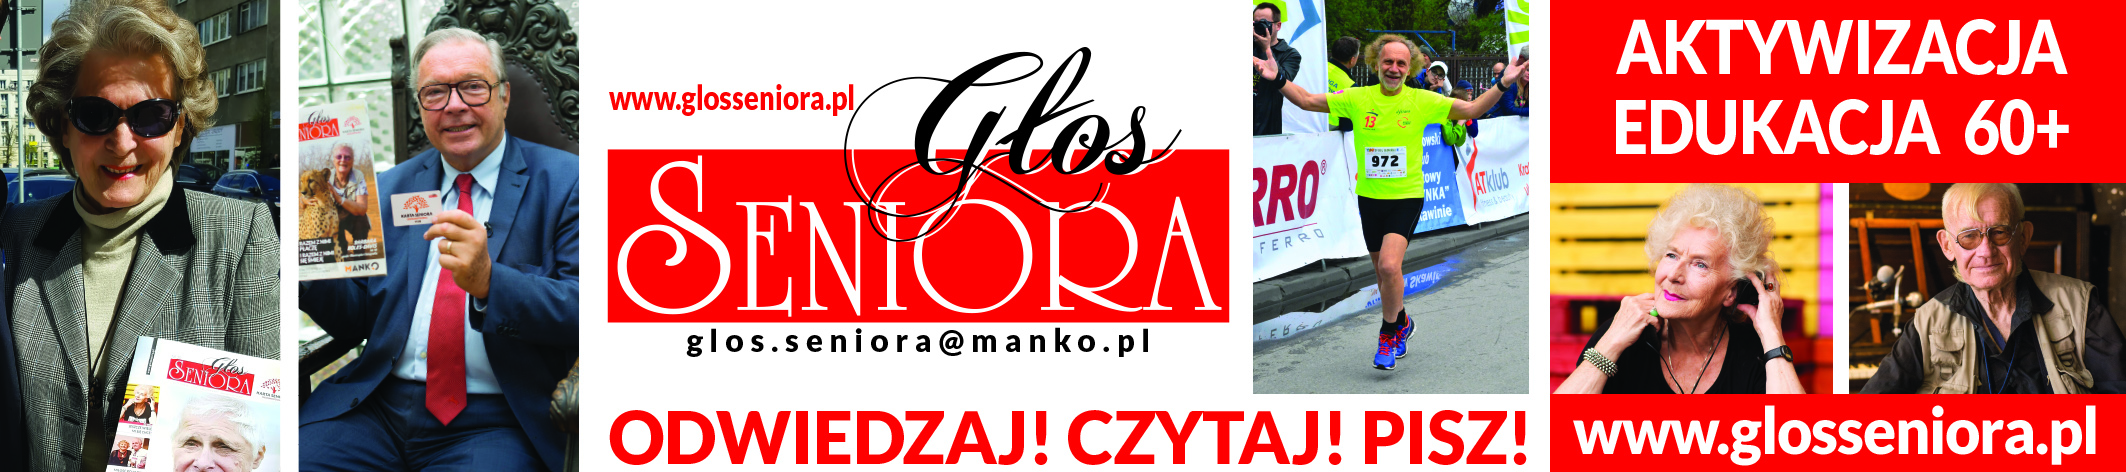 GłosSeniora baner180x40mm